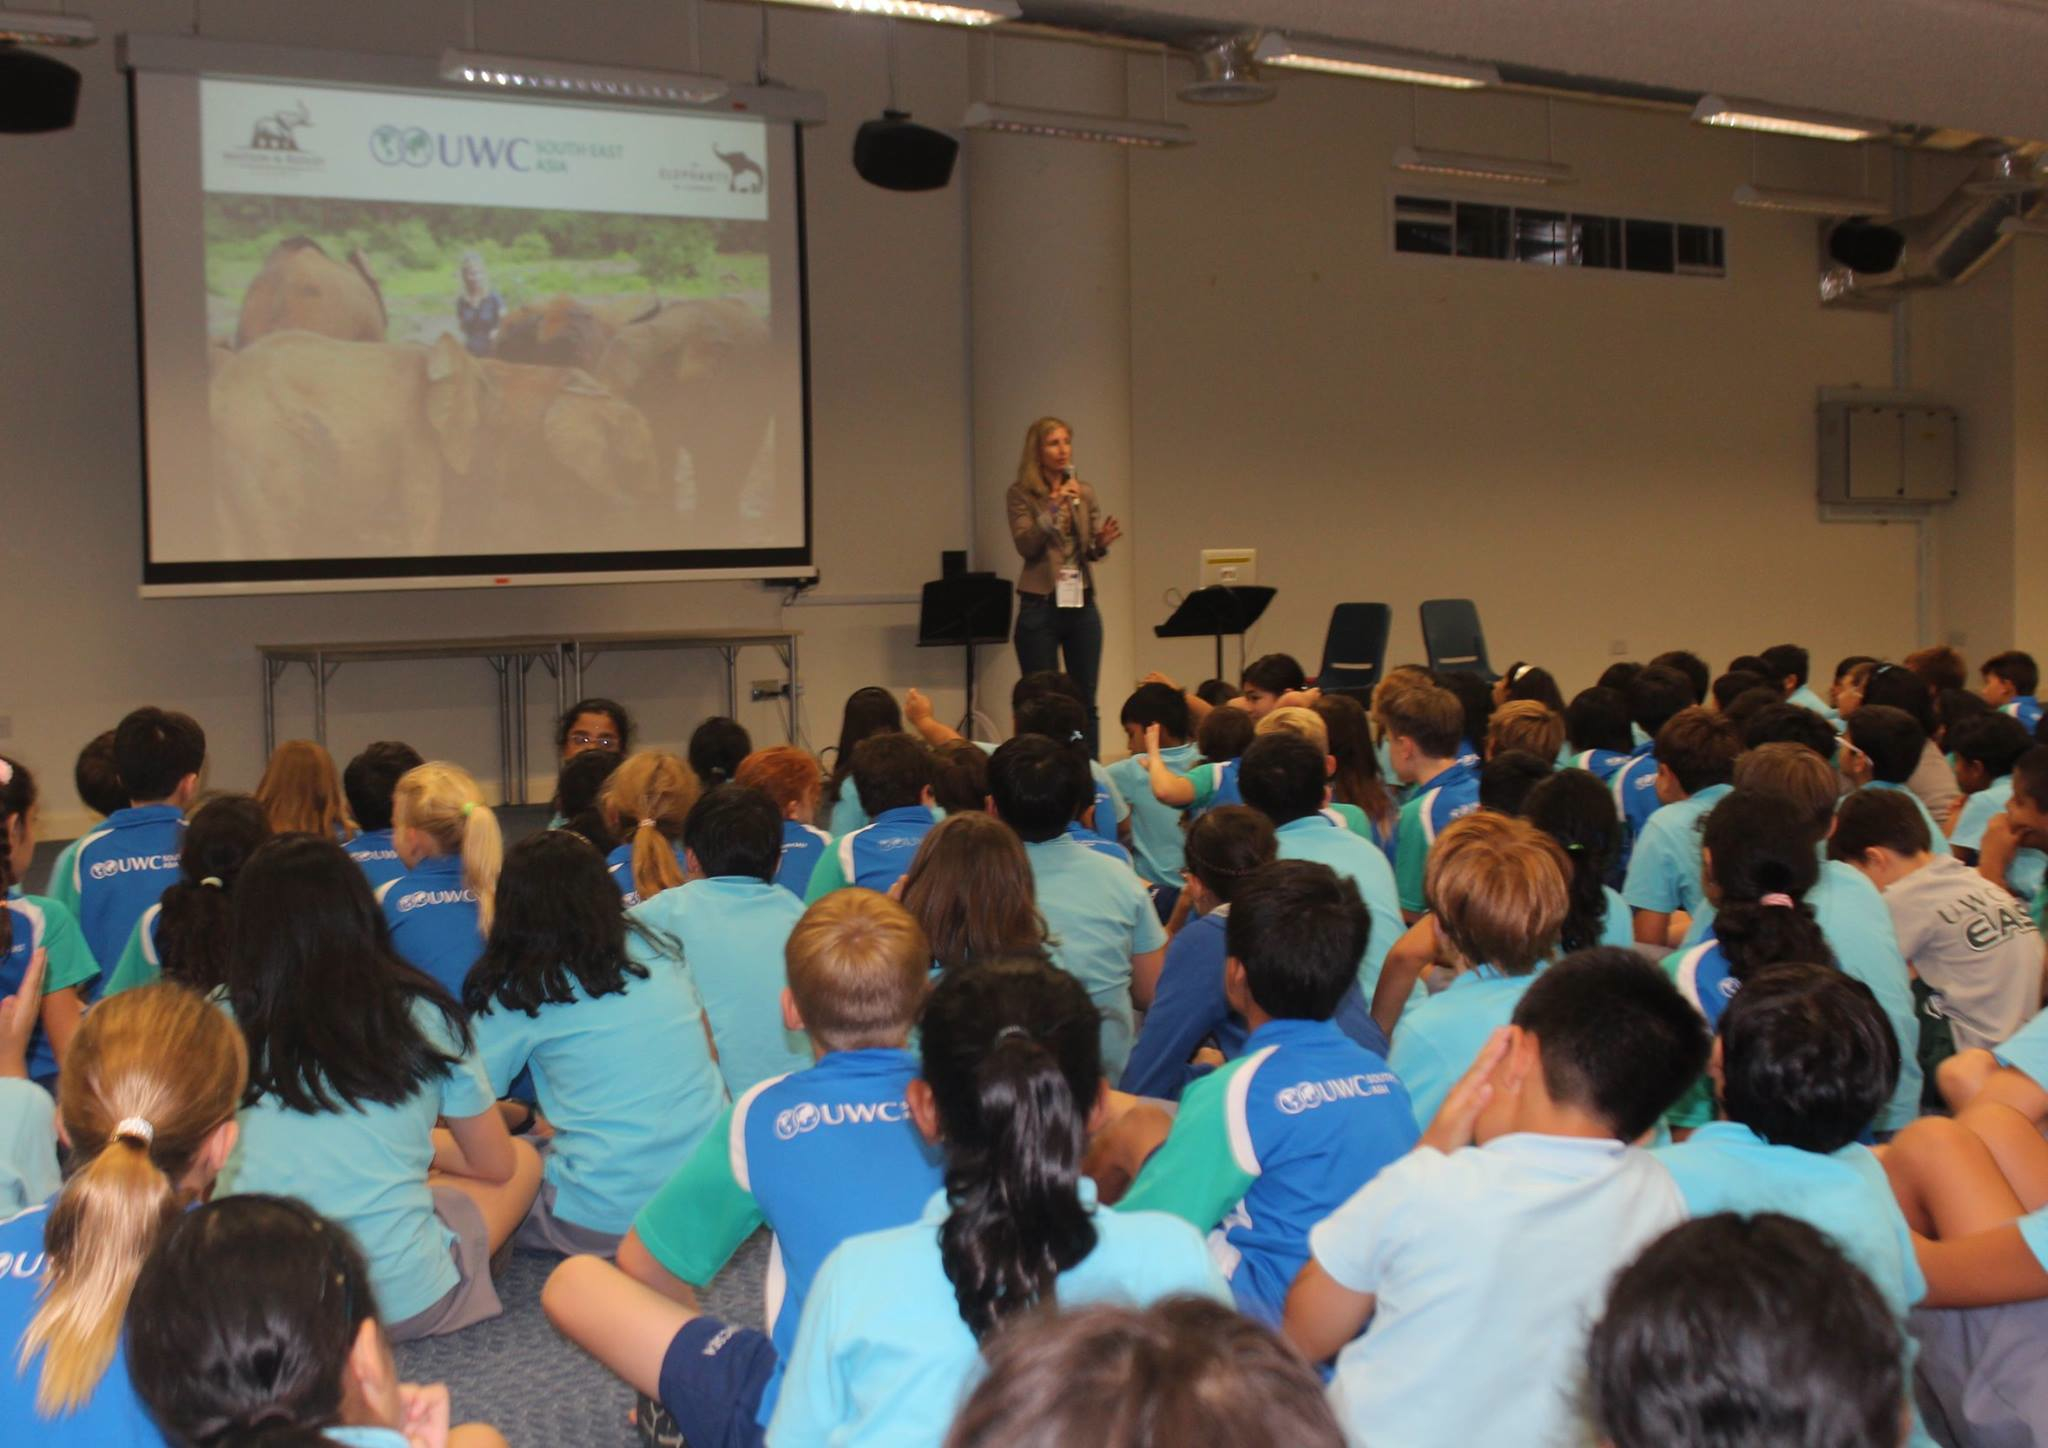 Speaking to Grade 4s at United World College, Singapore